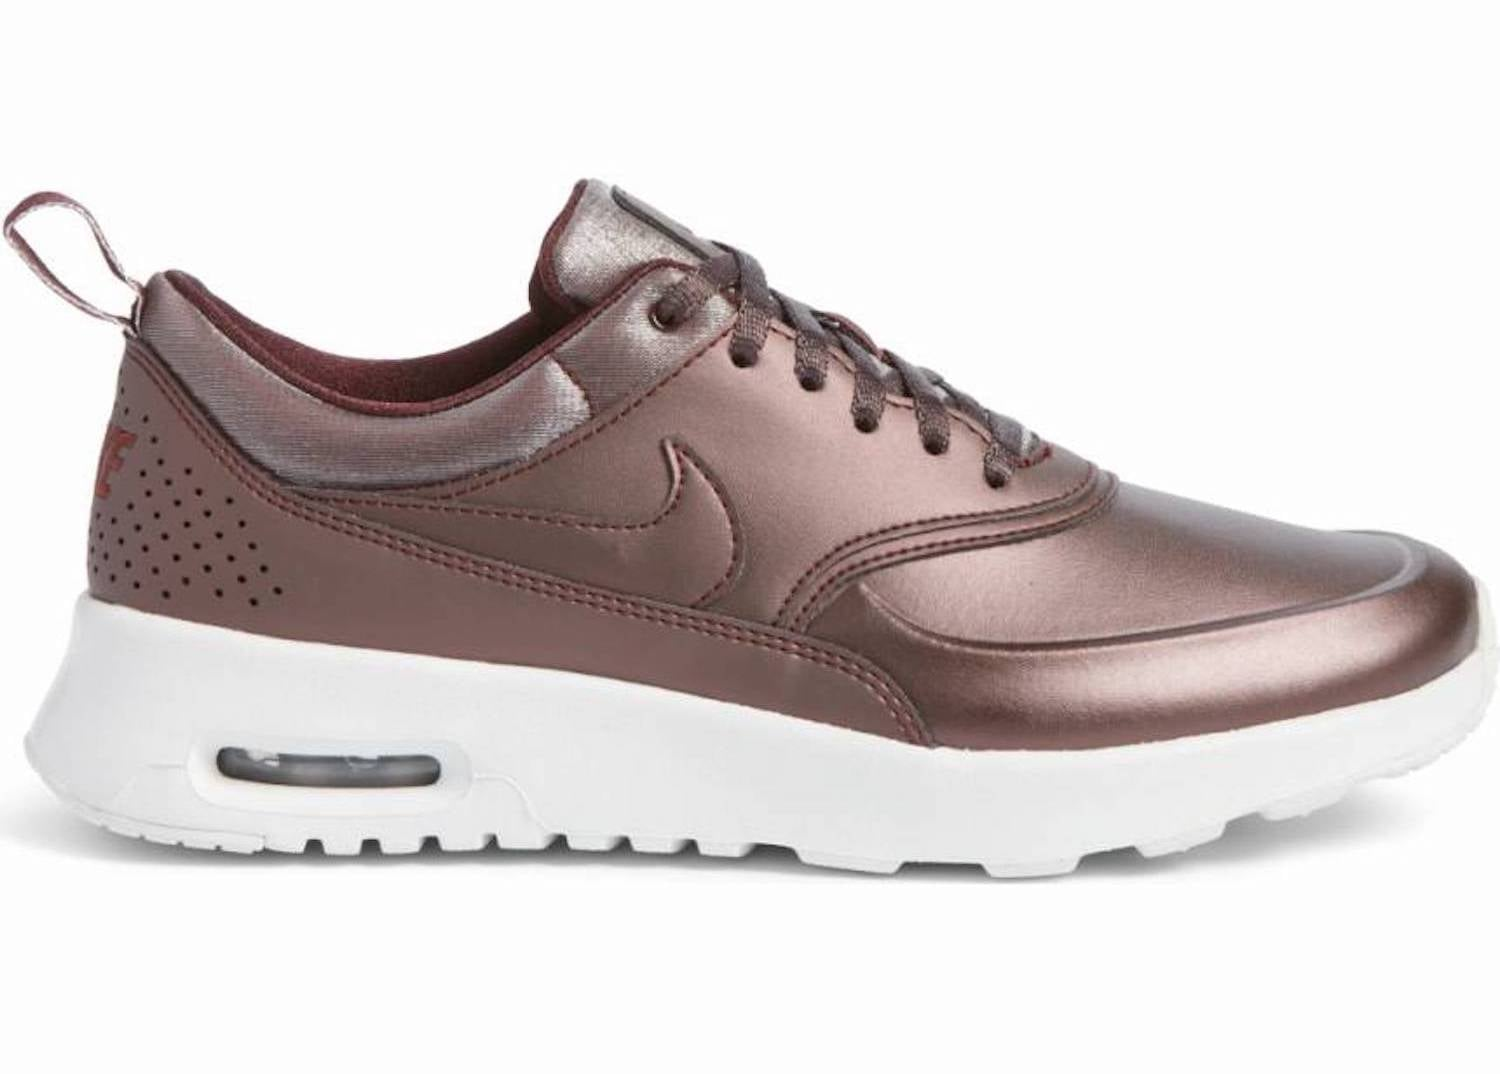 low priced 00050 08e4a Nike Air Max Thea Sneaker in Mahogany